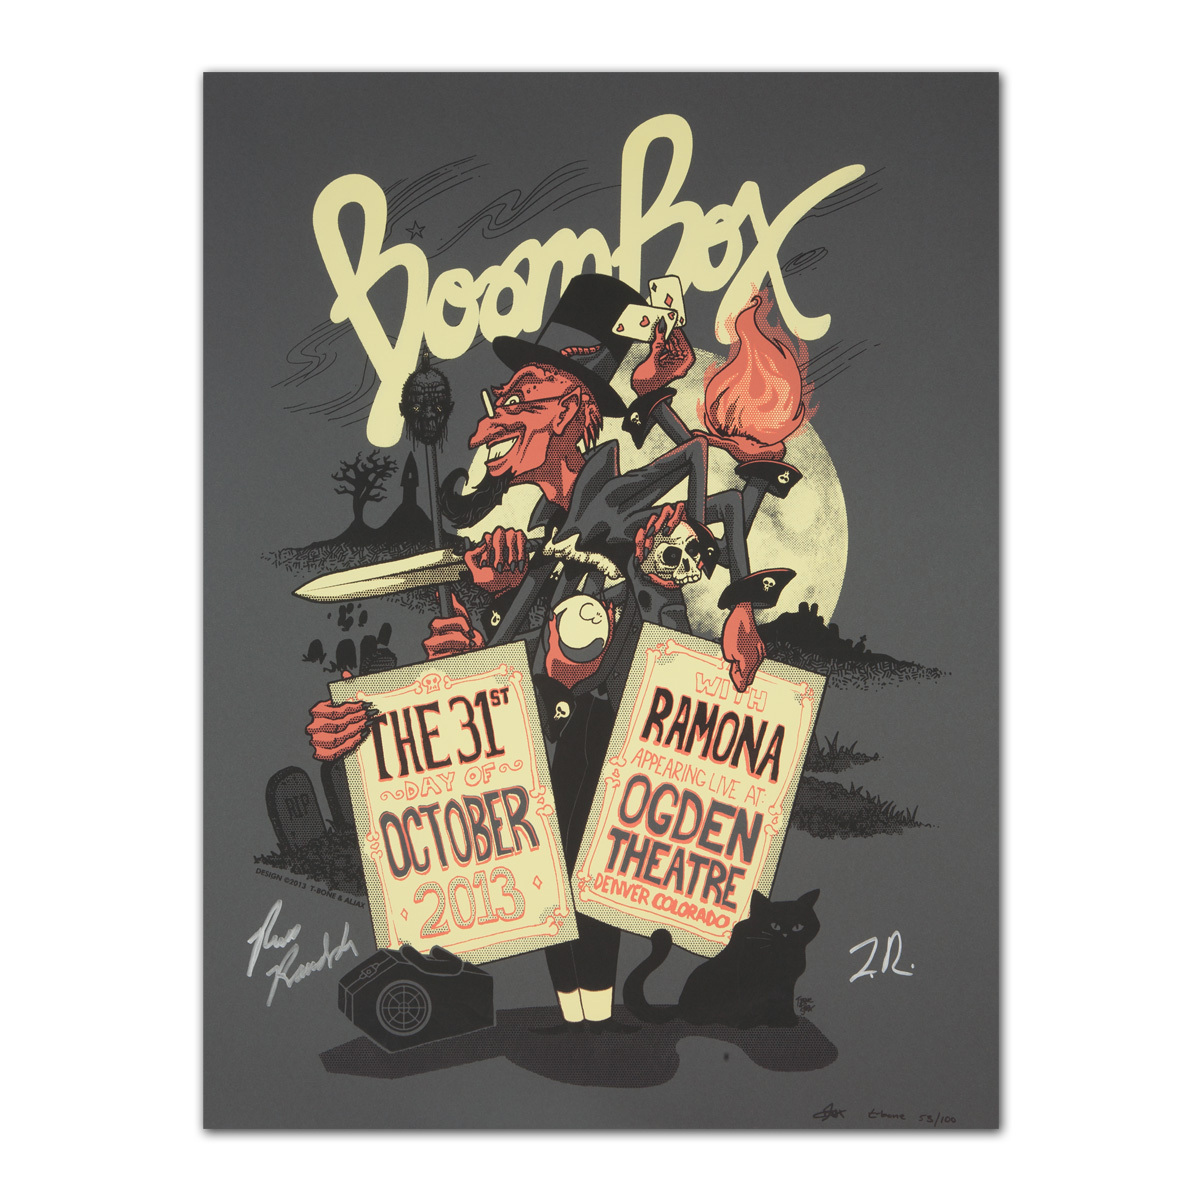 BoomBox Ogden Theatre Poster